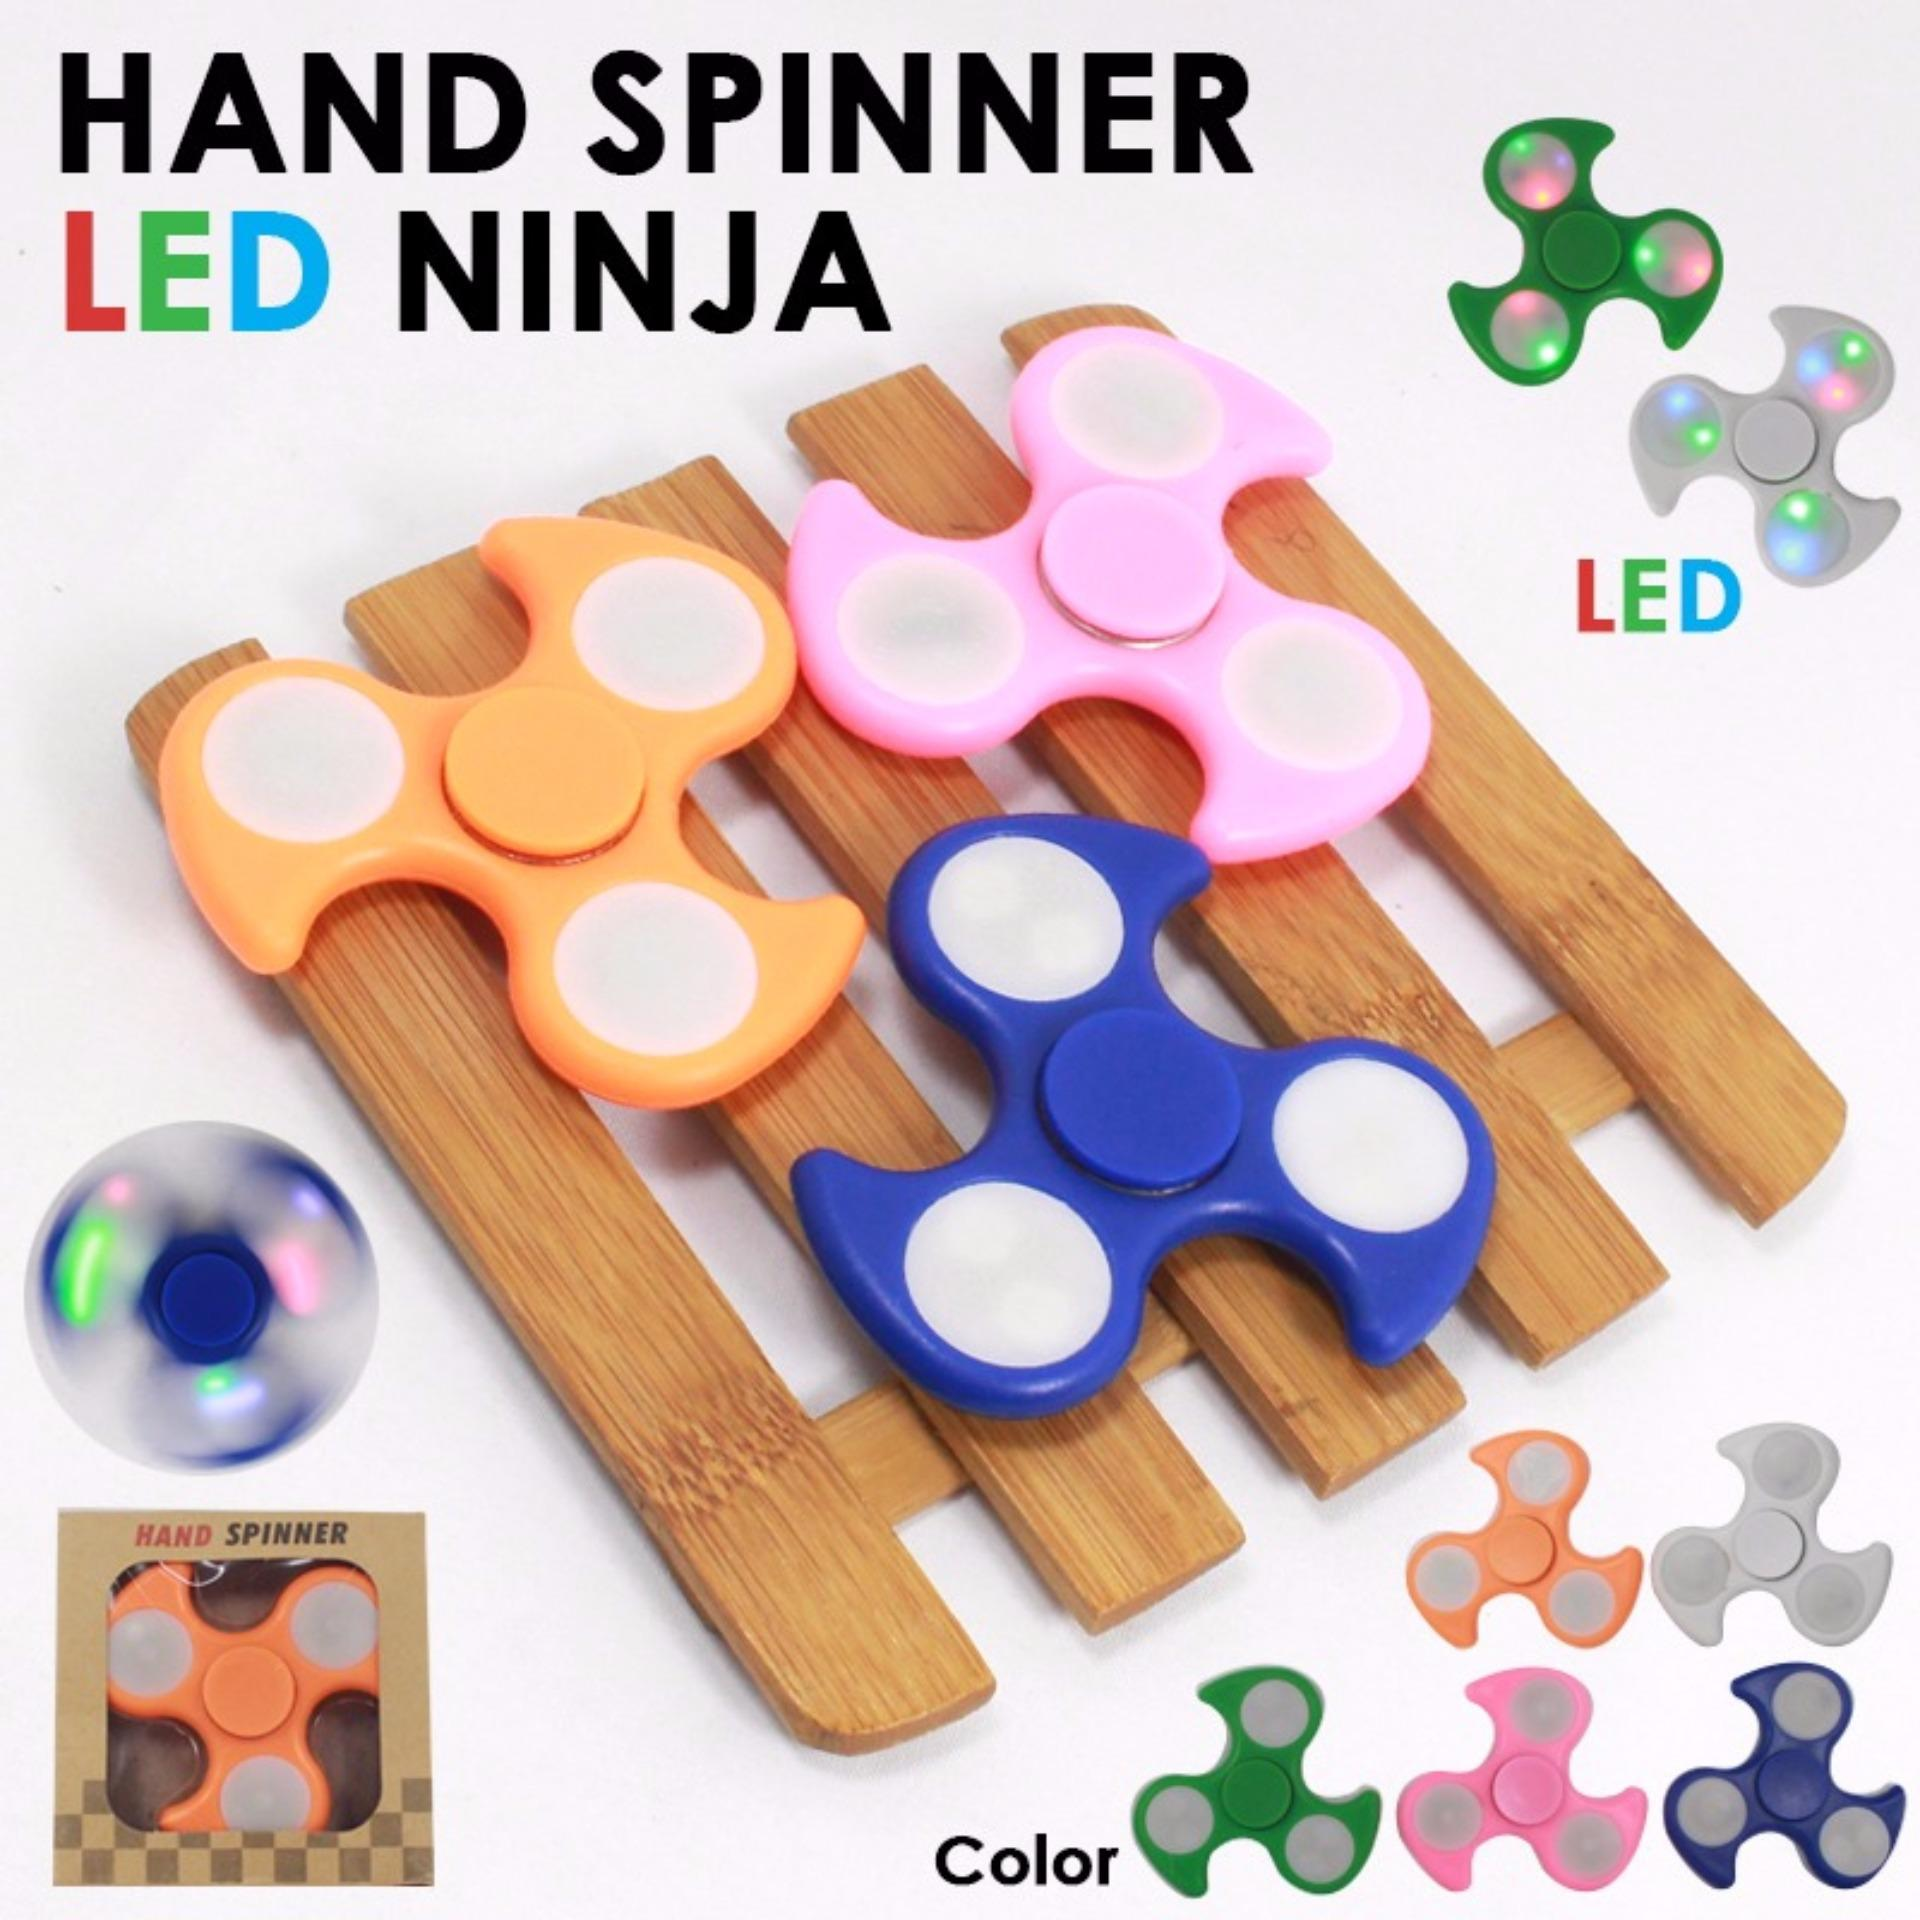 Happy Fidget Hand Spinner Shuriken NINJA With LED Hand Toys Focus Games - Mainan Spiner Penghilang